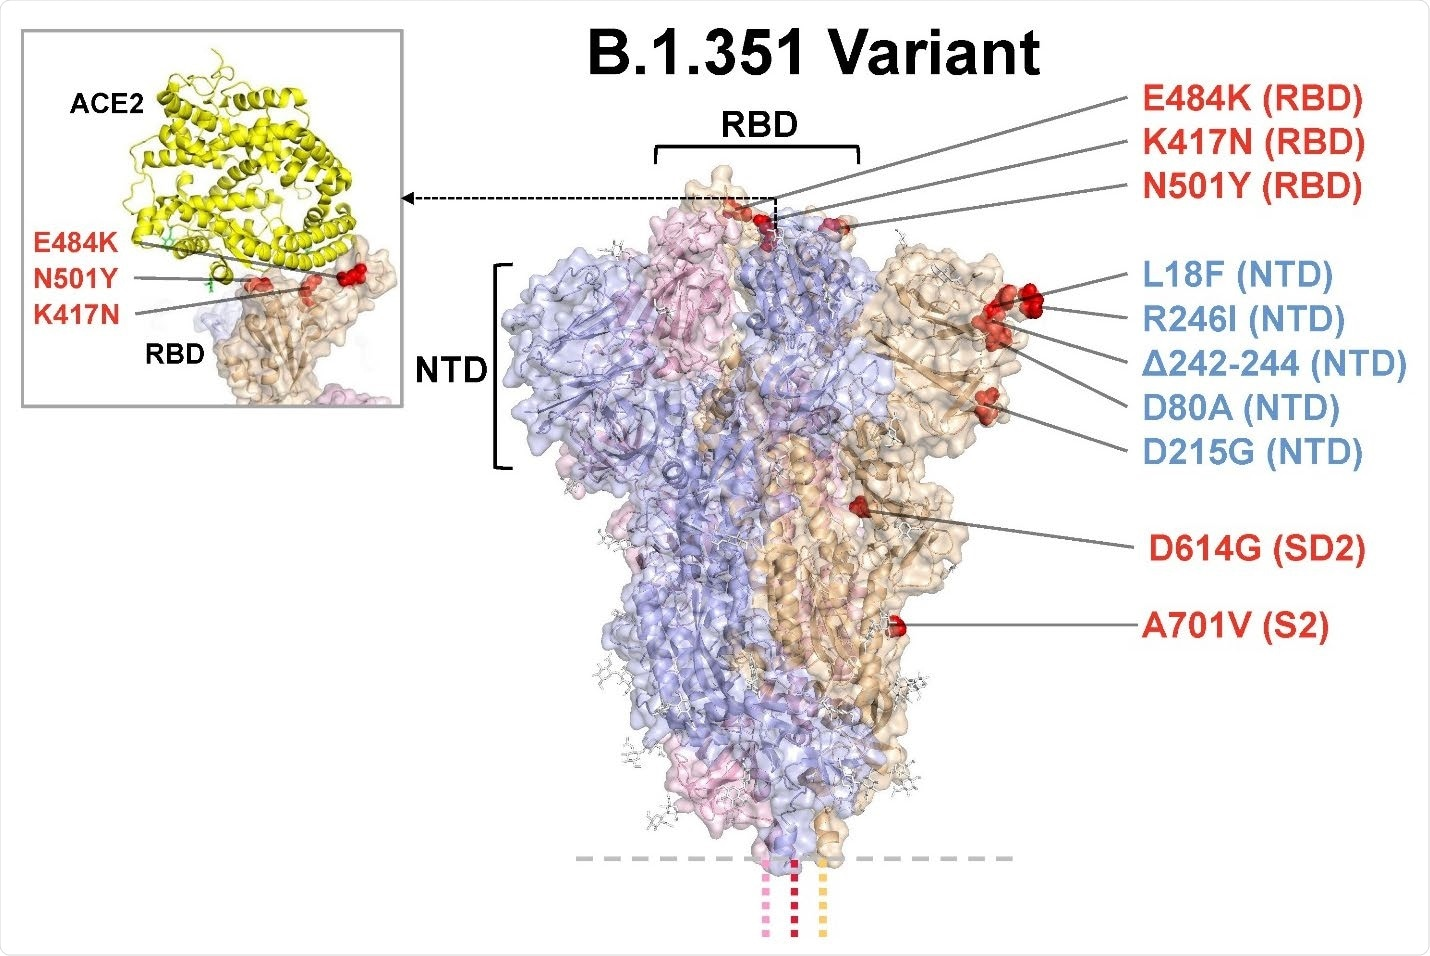 Model of S protein. mRNA-1273.351 encodes the B.1.351 lineage S variant. Surface representation of the trimeric S protein in the vertical view with the locations of surface-exposed mutated residues highlighted in red spheres and labelled on the grey monomer. The inset shows superimposition of ACE-2 receptor domain and the RBD. S protein structure, 6VSB. ACE2-RBD structure, 6M0J. ACE2, angiotensin converting enzyme 2; NTD, N-terminal domain; RBD, receptor binding domain.